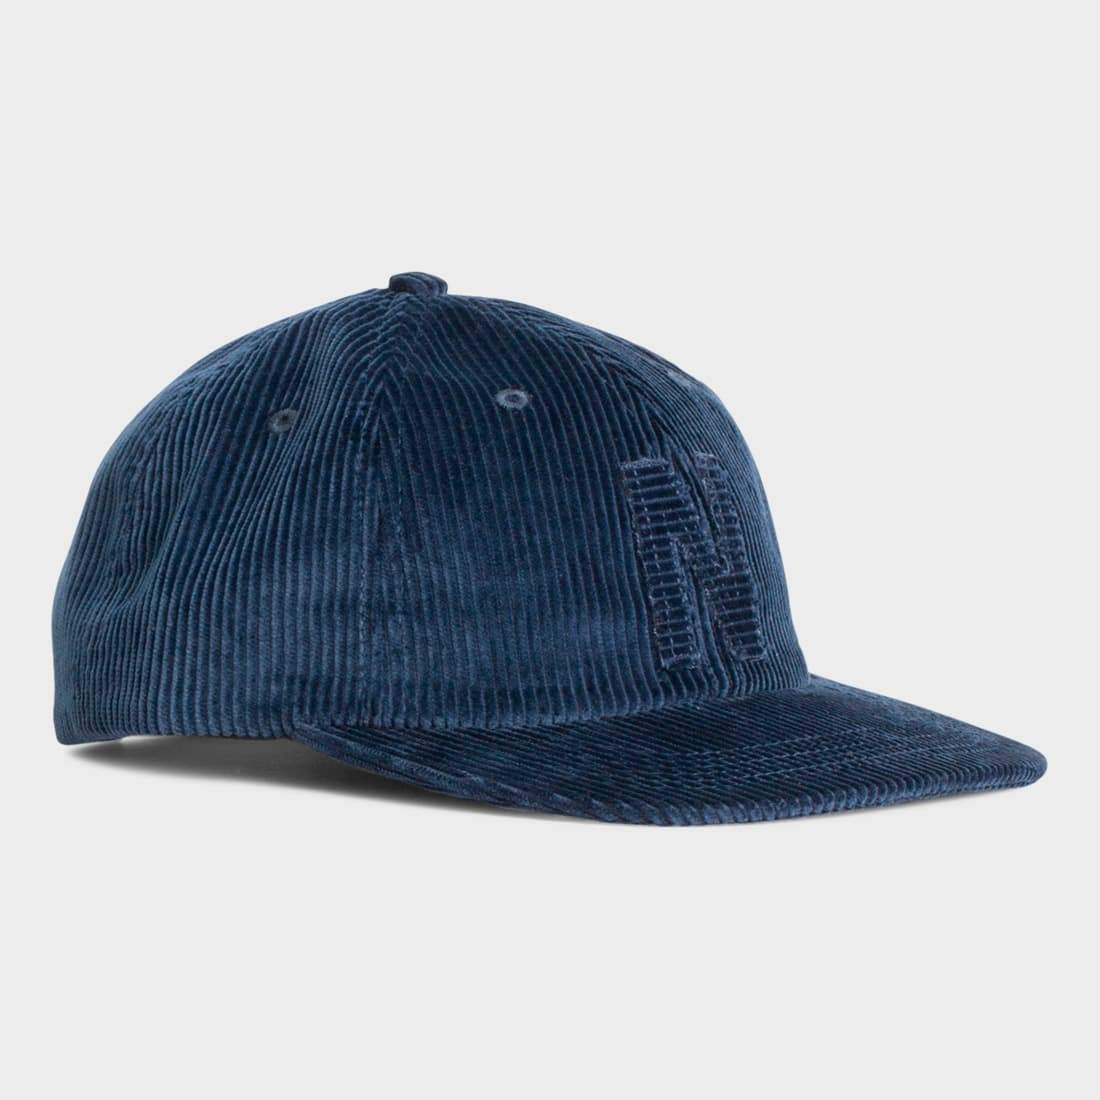 Norse Projects 6 Panel Corduroy Cap Petrol Blue – Wayward af1358e8e41